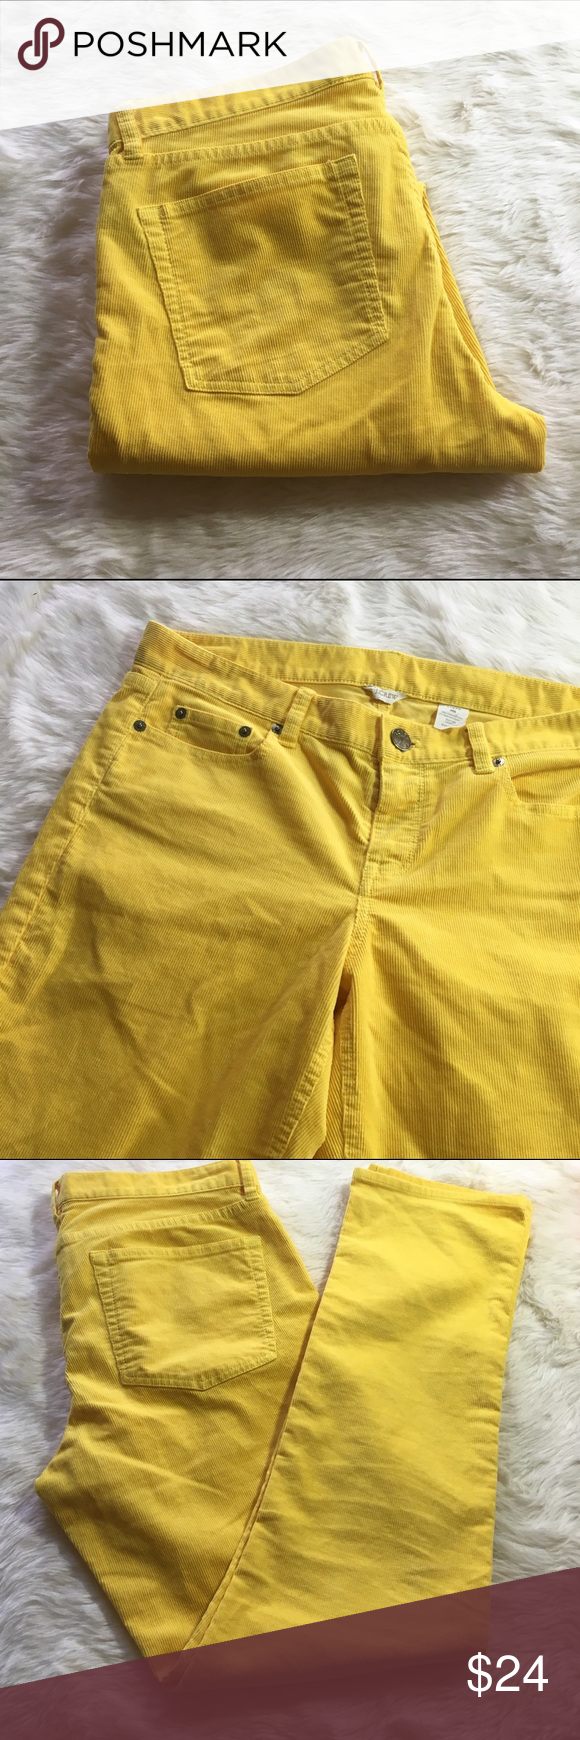 JCrew 30S City Fit Yellow Corduroy Pants This would be a great pop of color to your closet - pair with dark tops and bulky sweaters and wear with tall or ankle boots. Bright yellow corduroy pants. City fit. 30S size - short but actually inseam is 30 inches. Please let me know if you have questions. Offers and offers and bundles welcome! J. Crew Pants Straight Leg